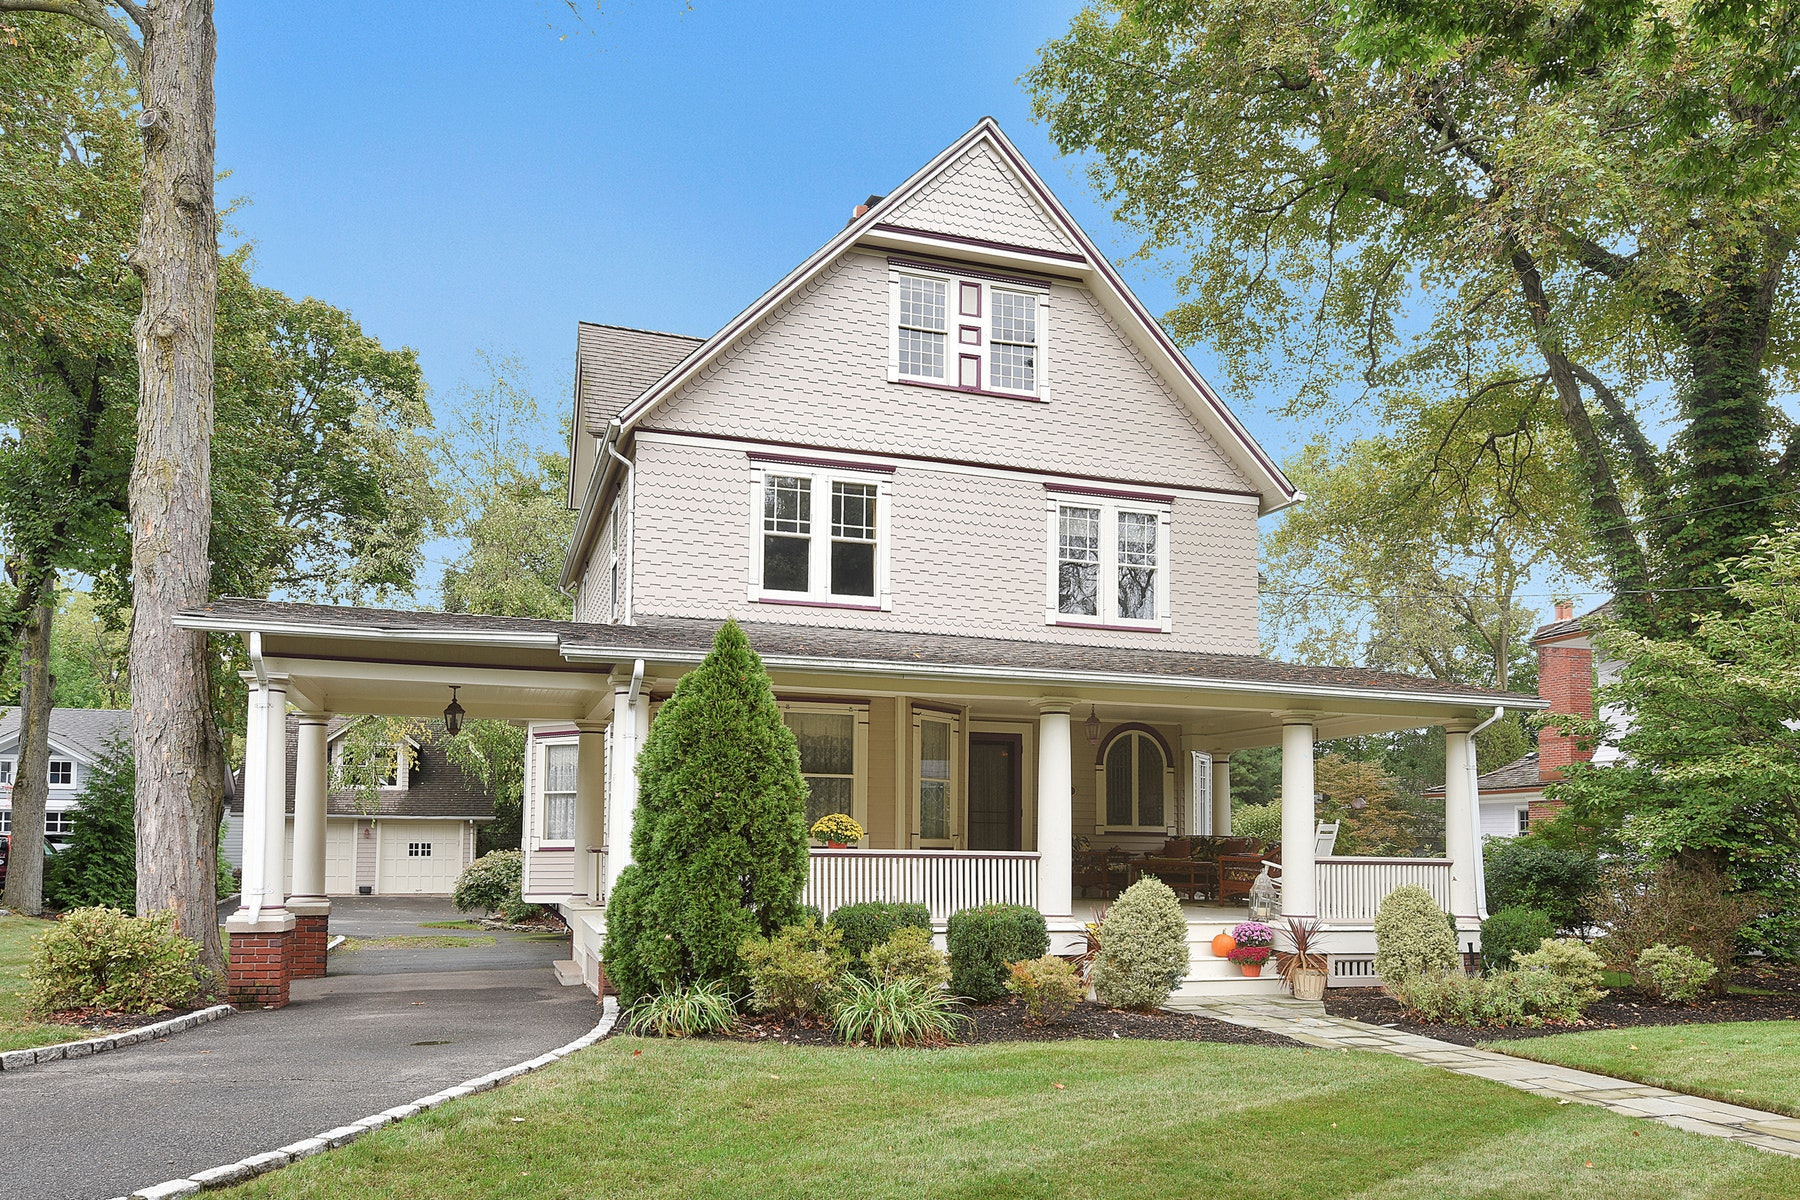 Single Family Homes for Sale at Gracious Colonial! 419 Spring Avenue Ridgewood, New Jersey 07450 United States